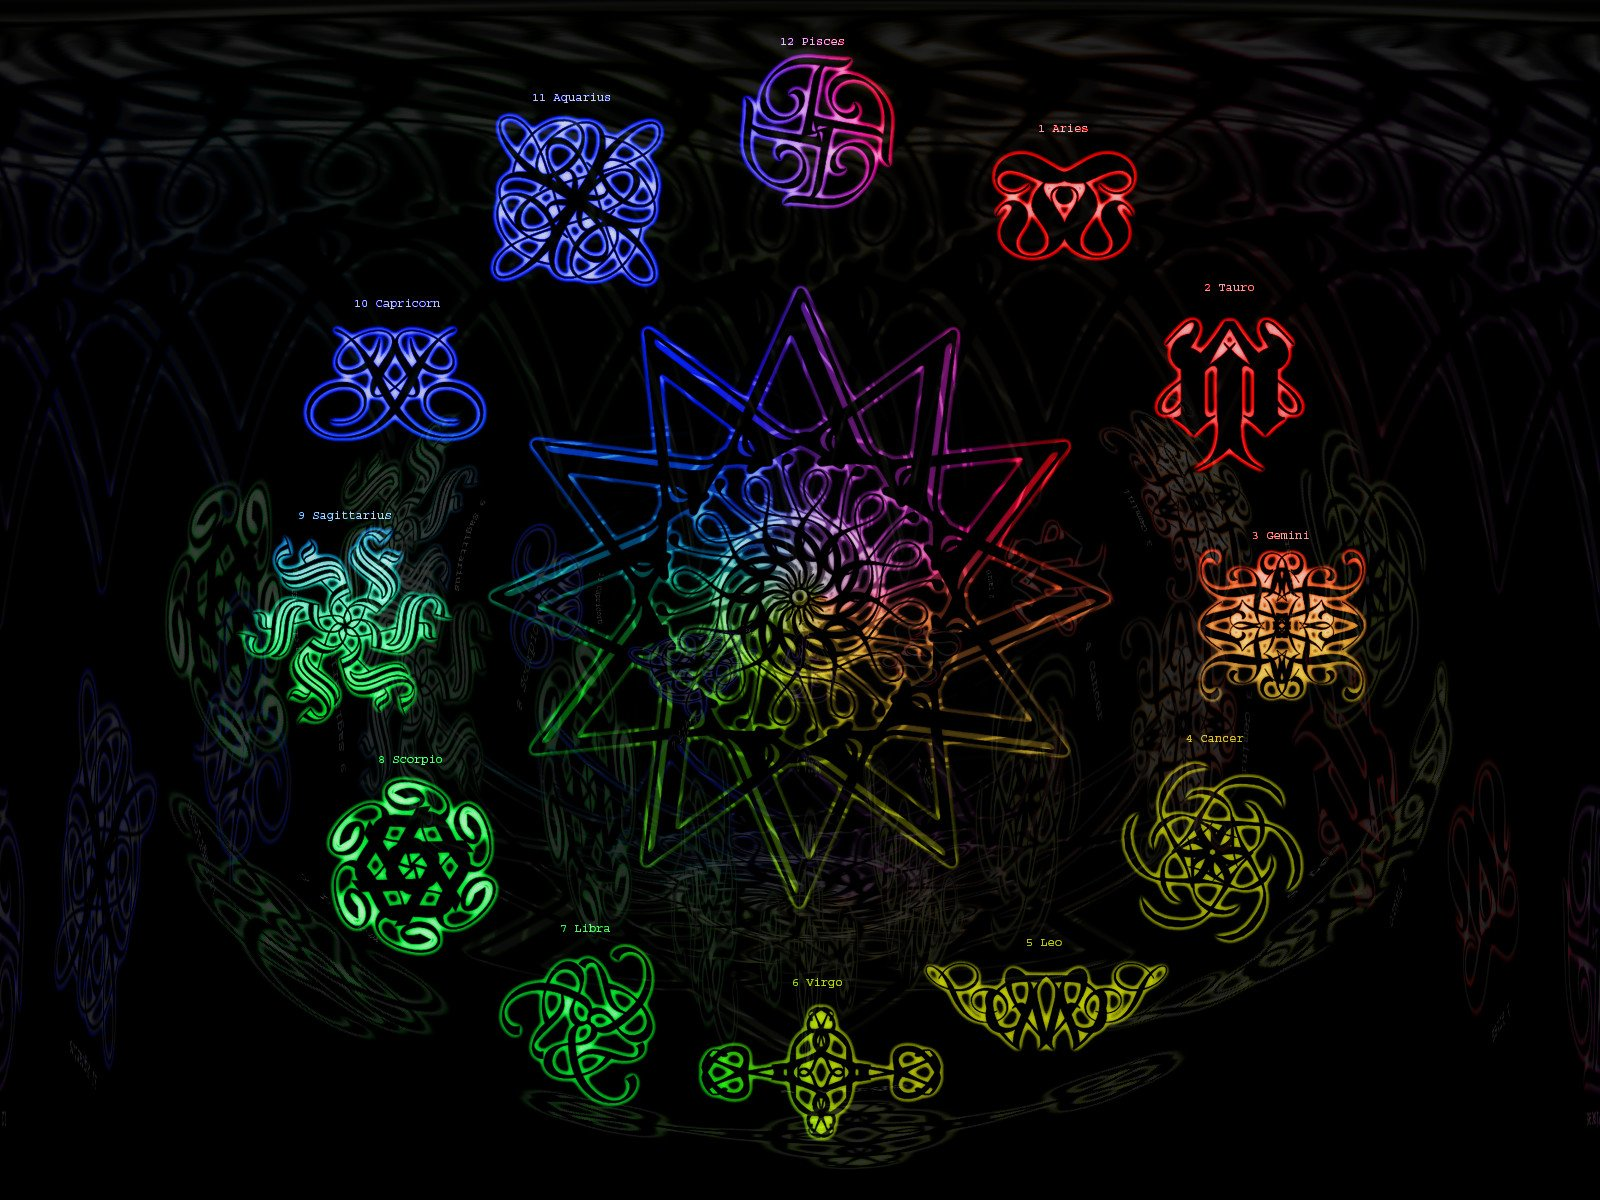 Colorful Zodiac Signs Computer Wallpaper 61293 1600x1200px 1600x1200